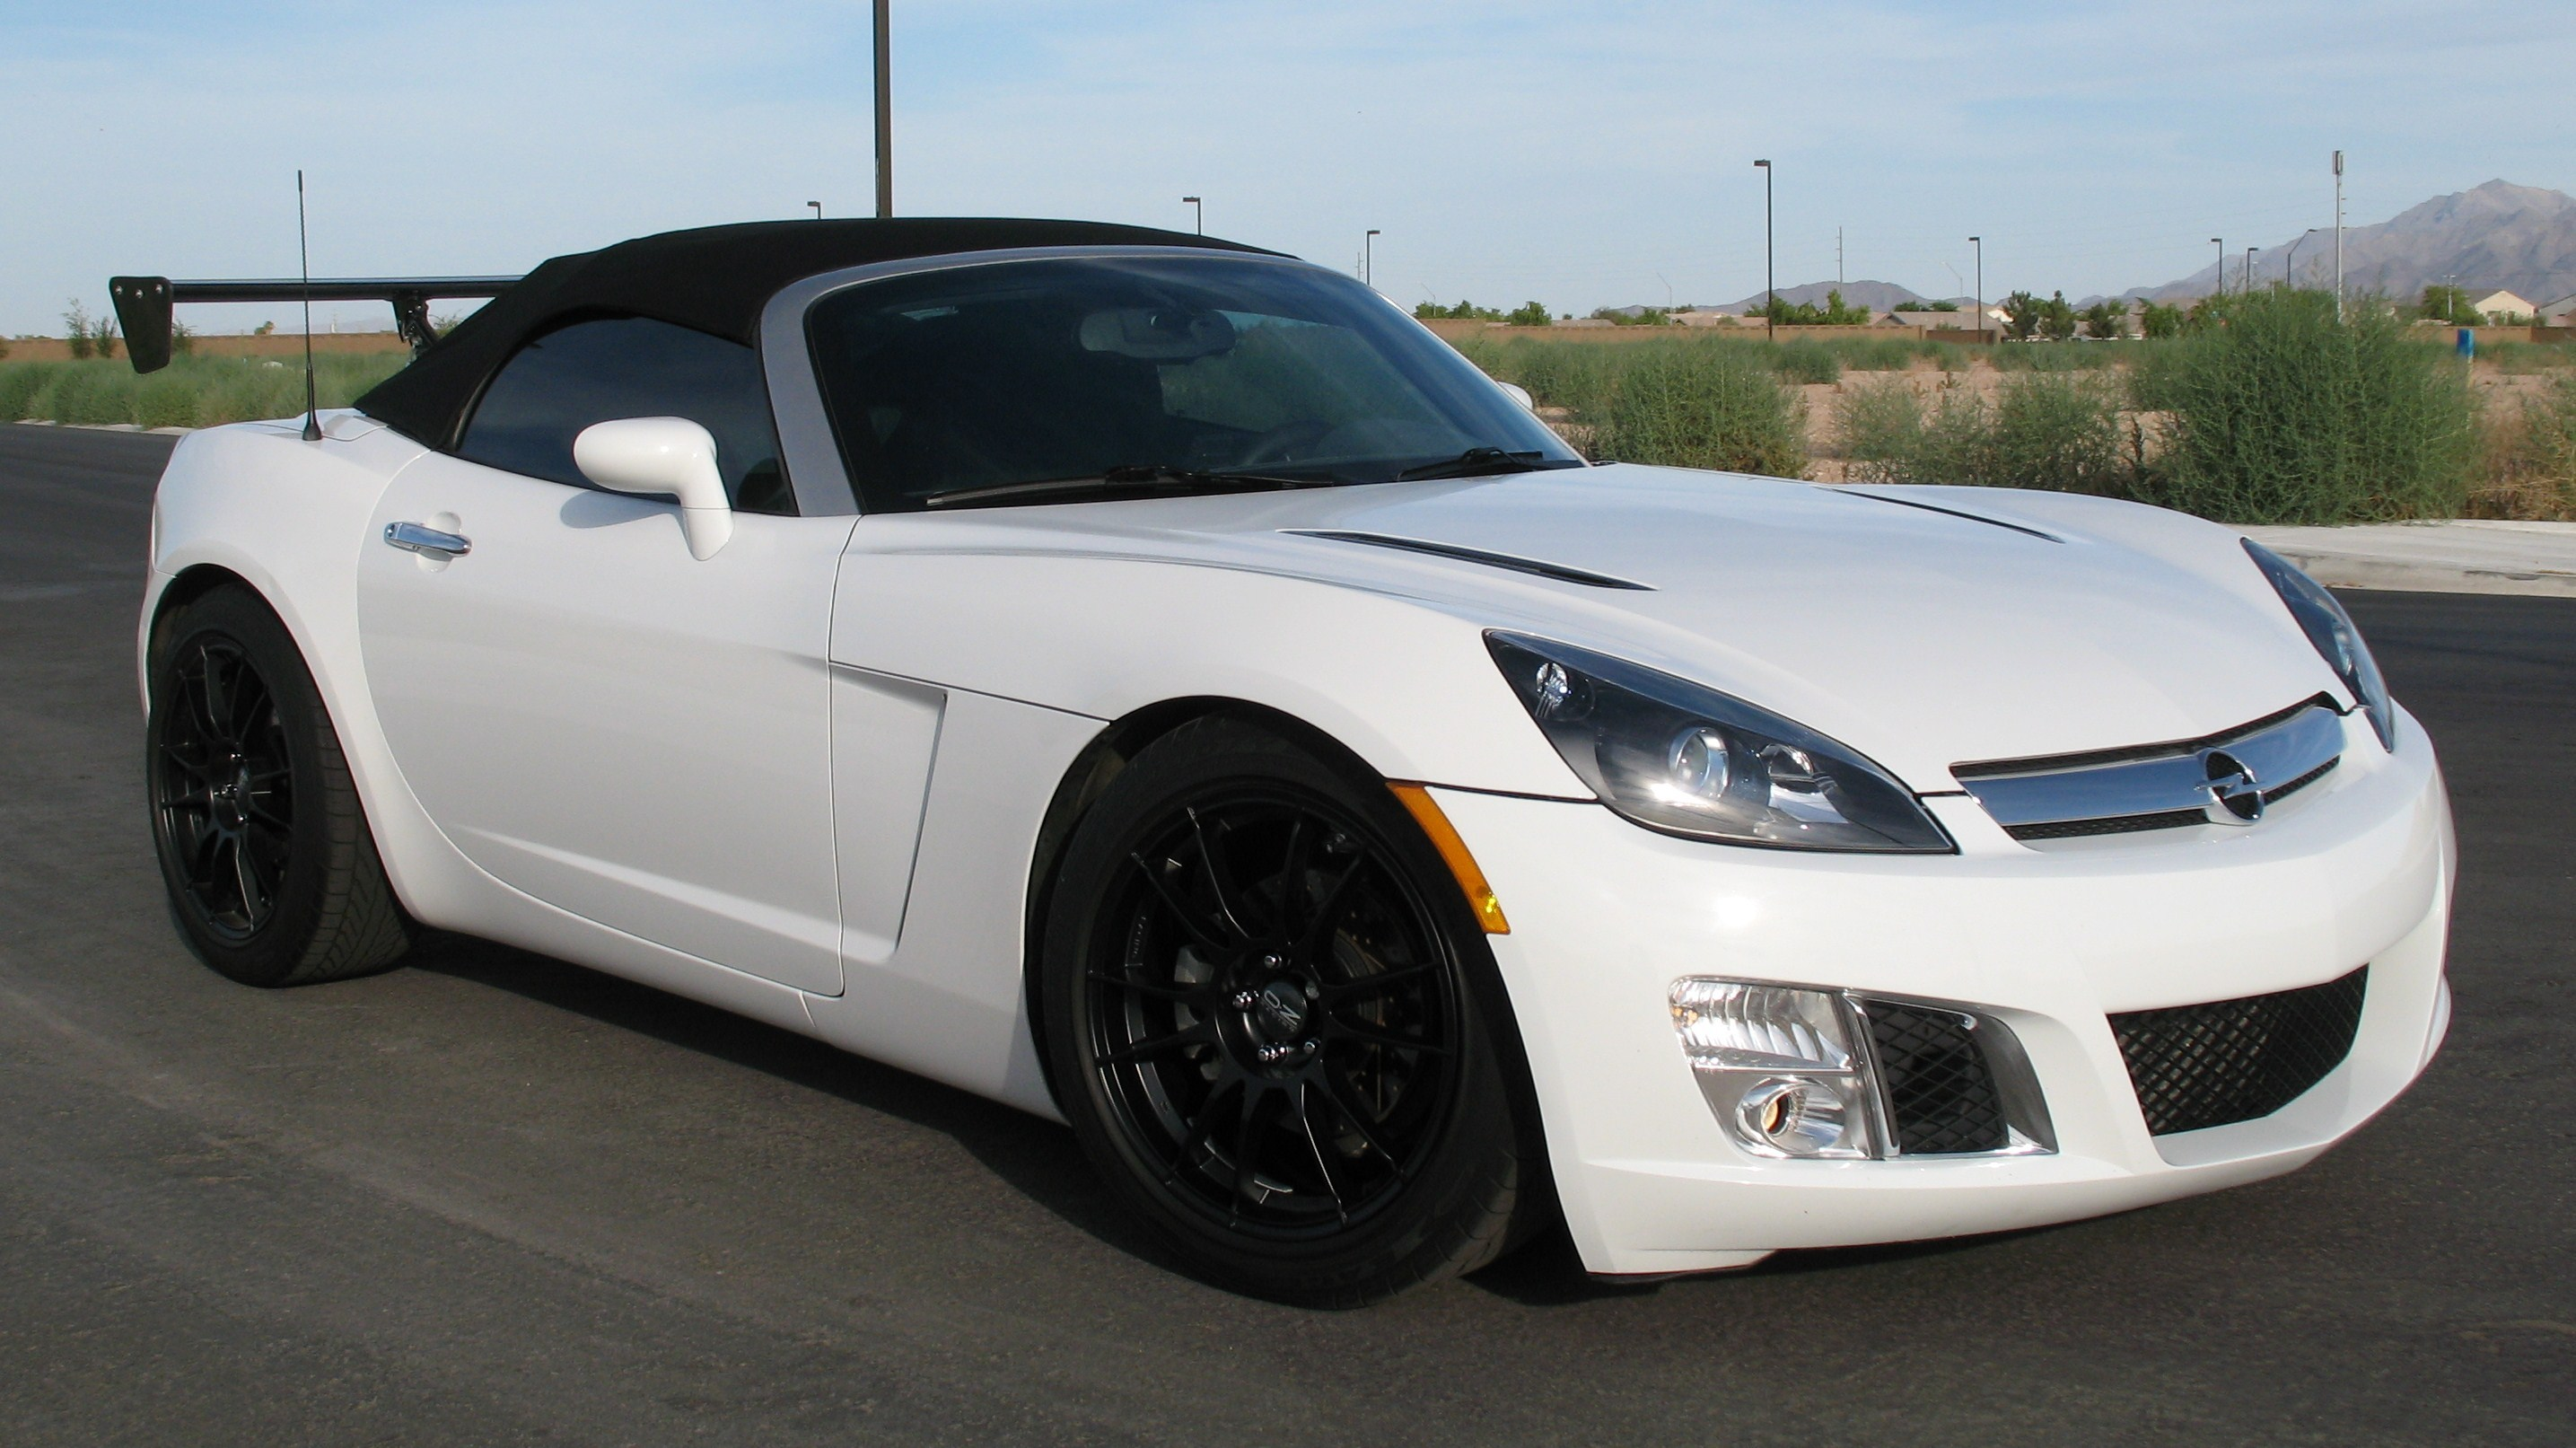 Marvelous ... Saponts 2008 Saturn SKY 30998490058_original ...